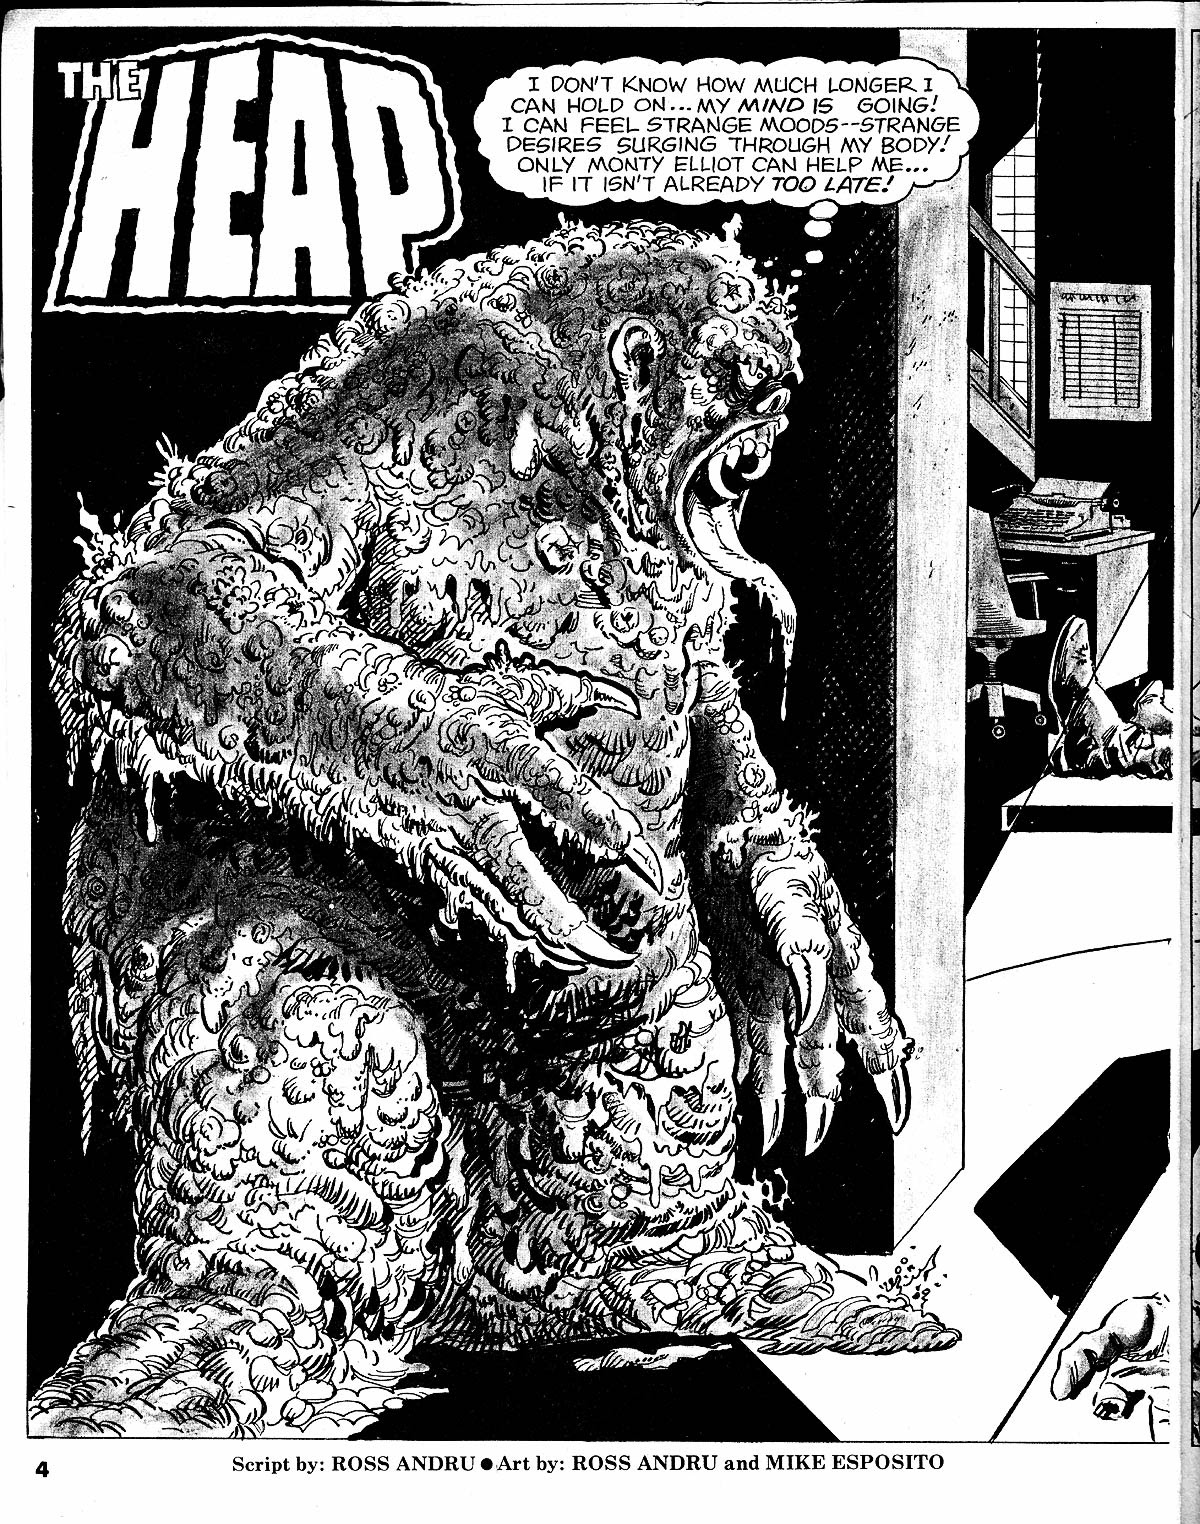 Skywald's Heap, illustrated by Ross Andru